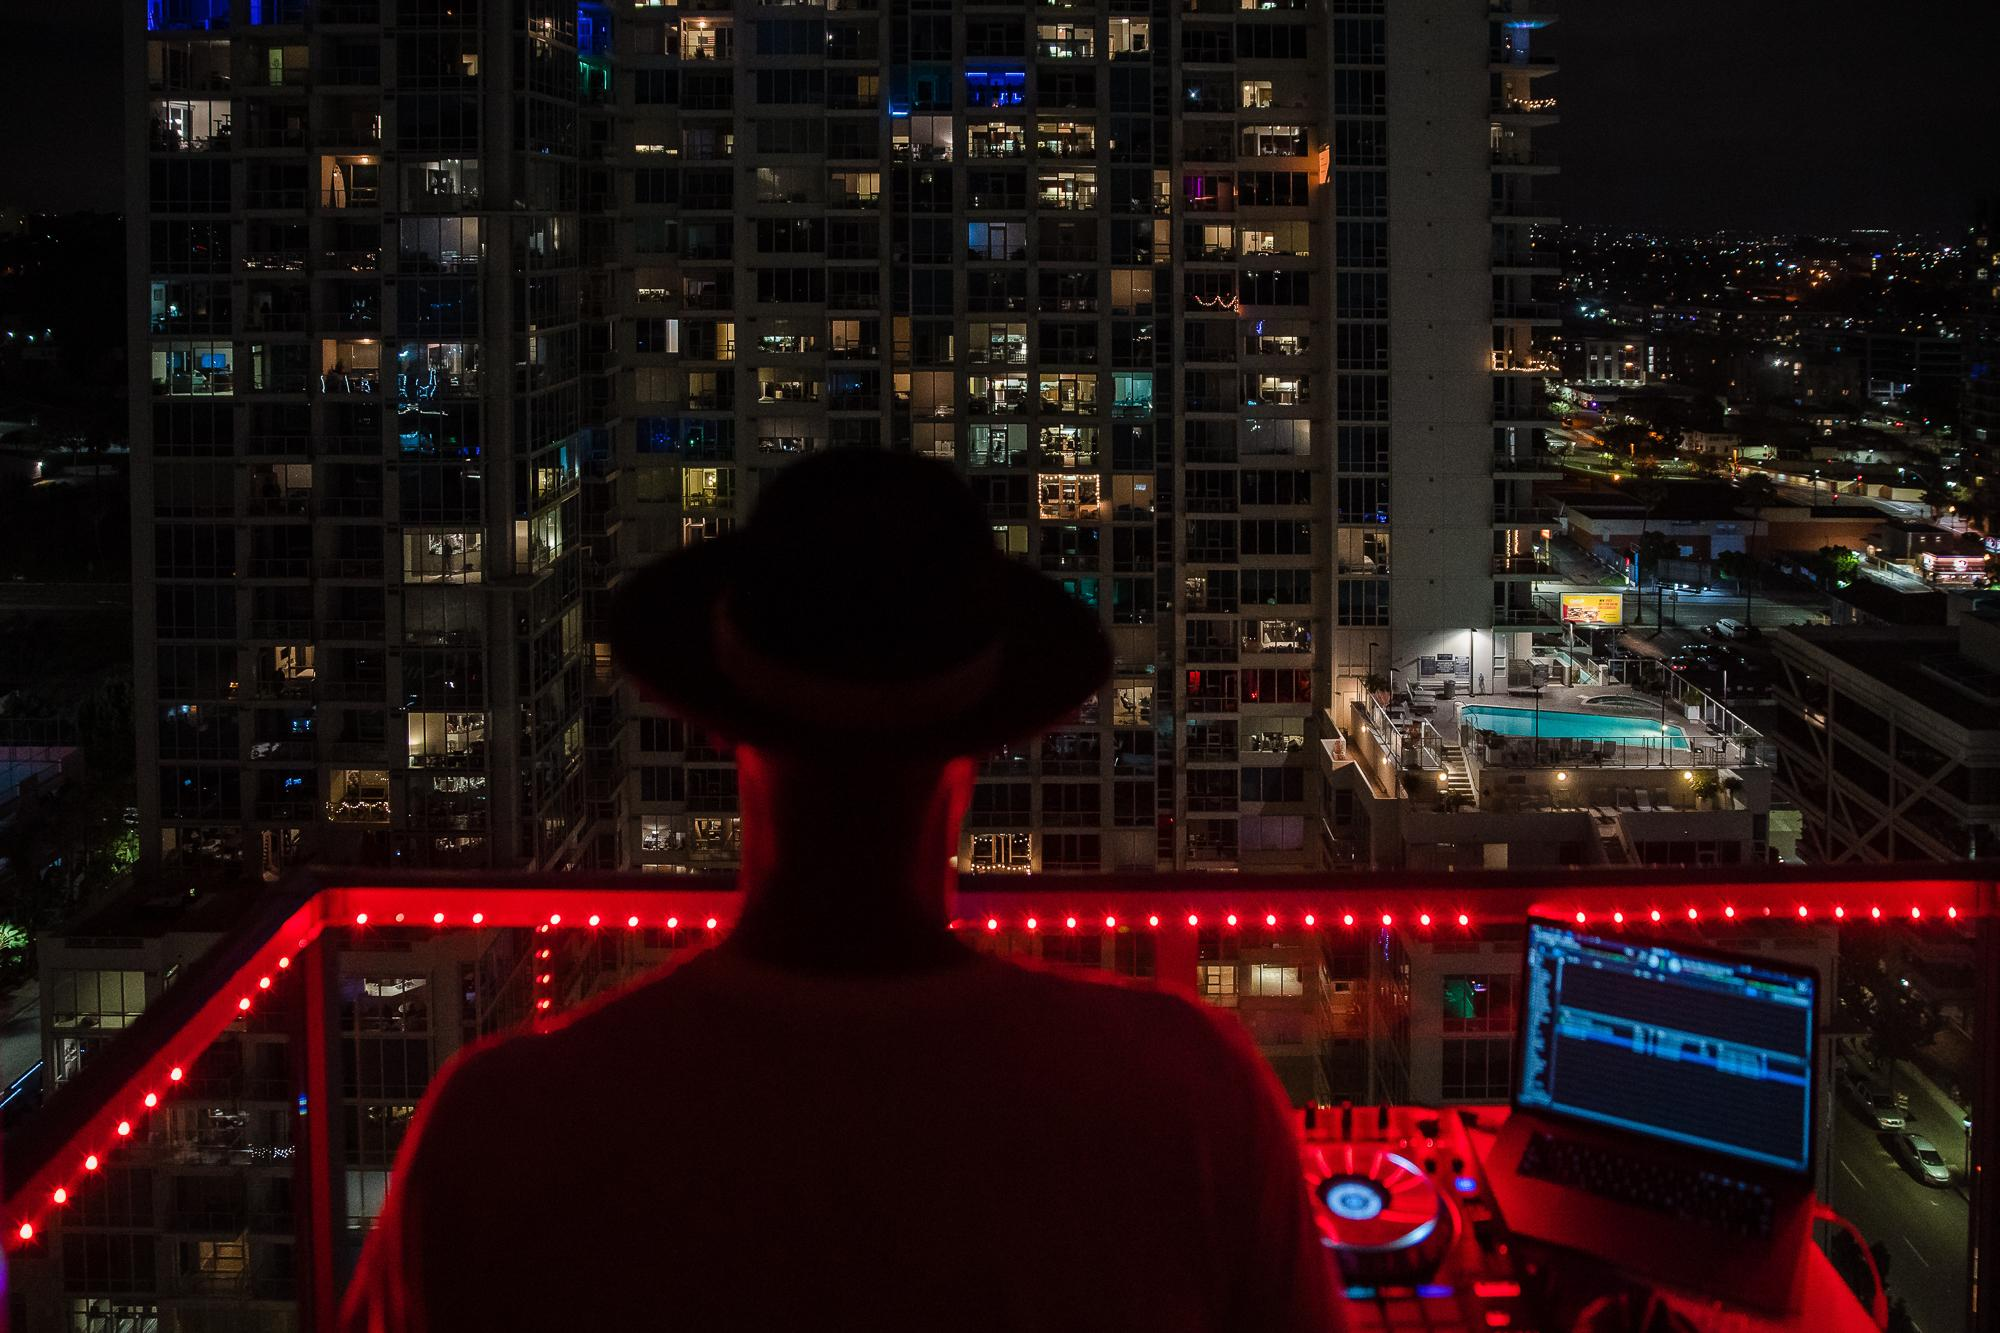 DJ IAMNOEL plays his set on a balcony in downtown San Diego on April 11, 2020.